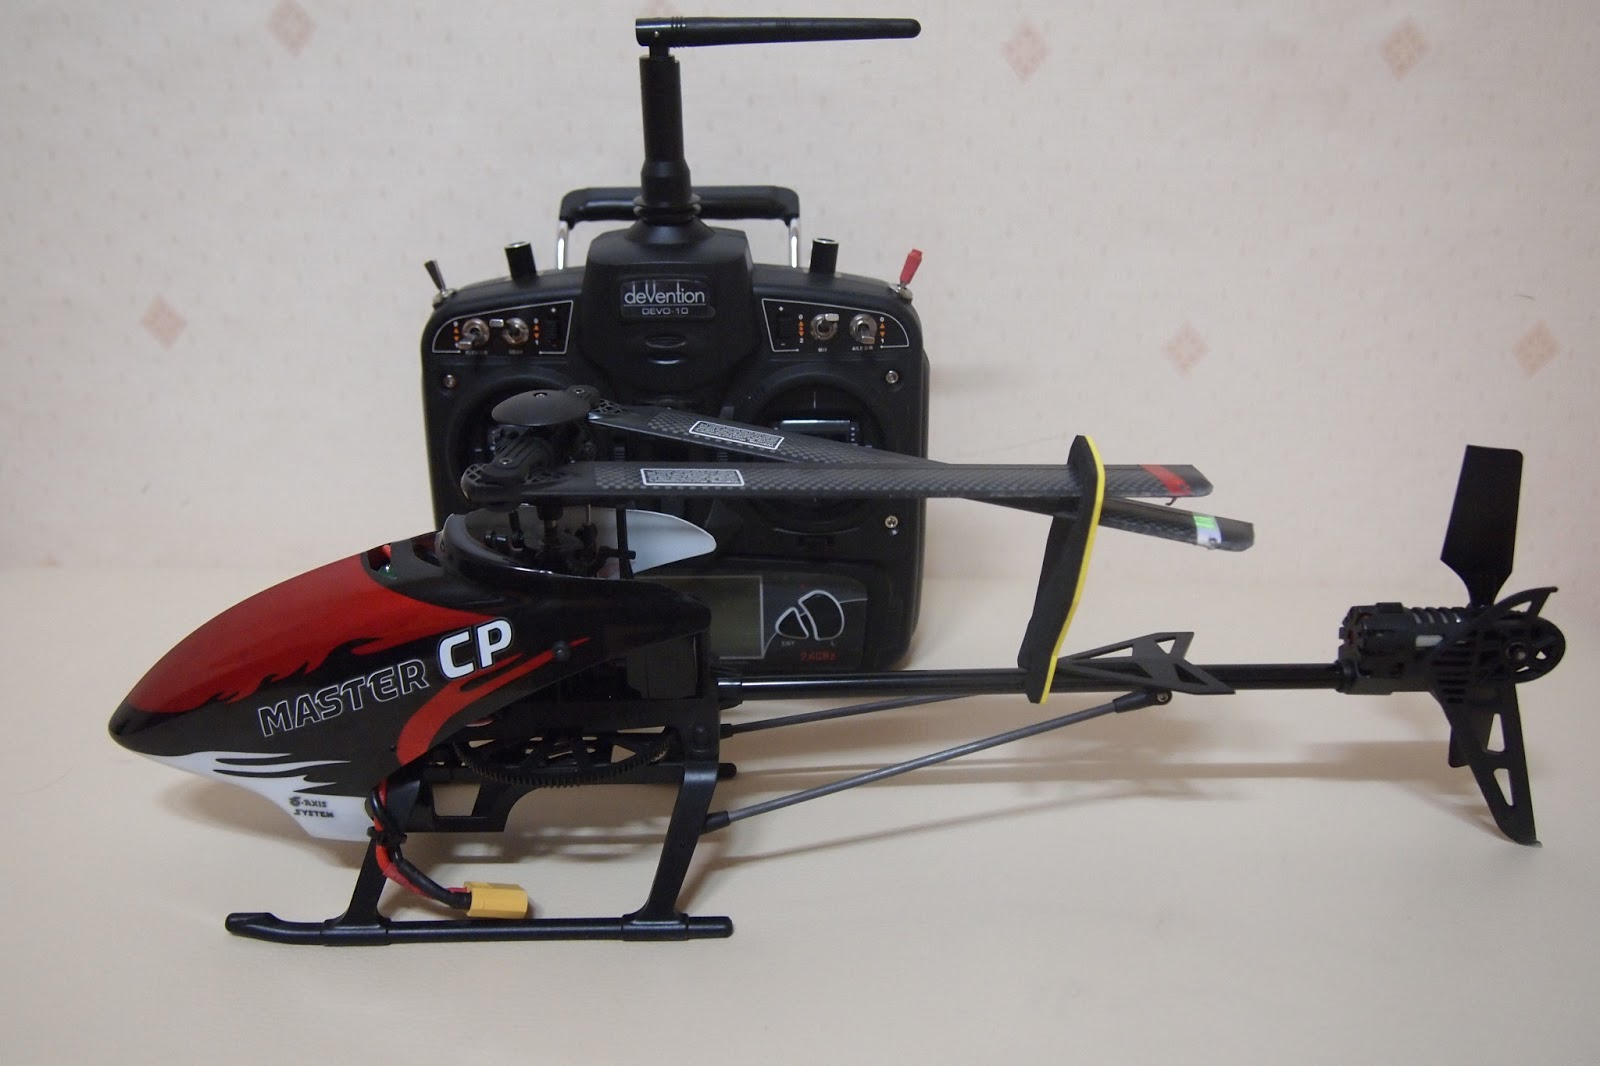 Walker Master Cp The 6 Channel Learning Heli